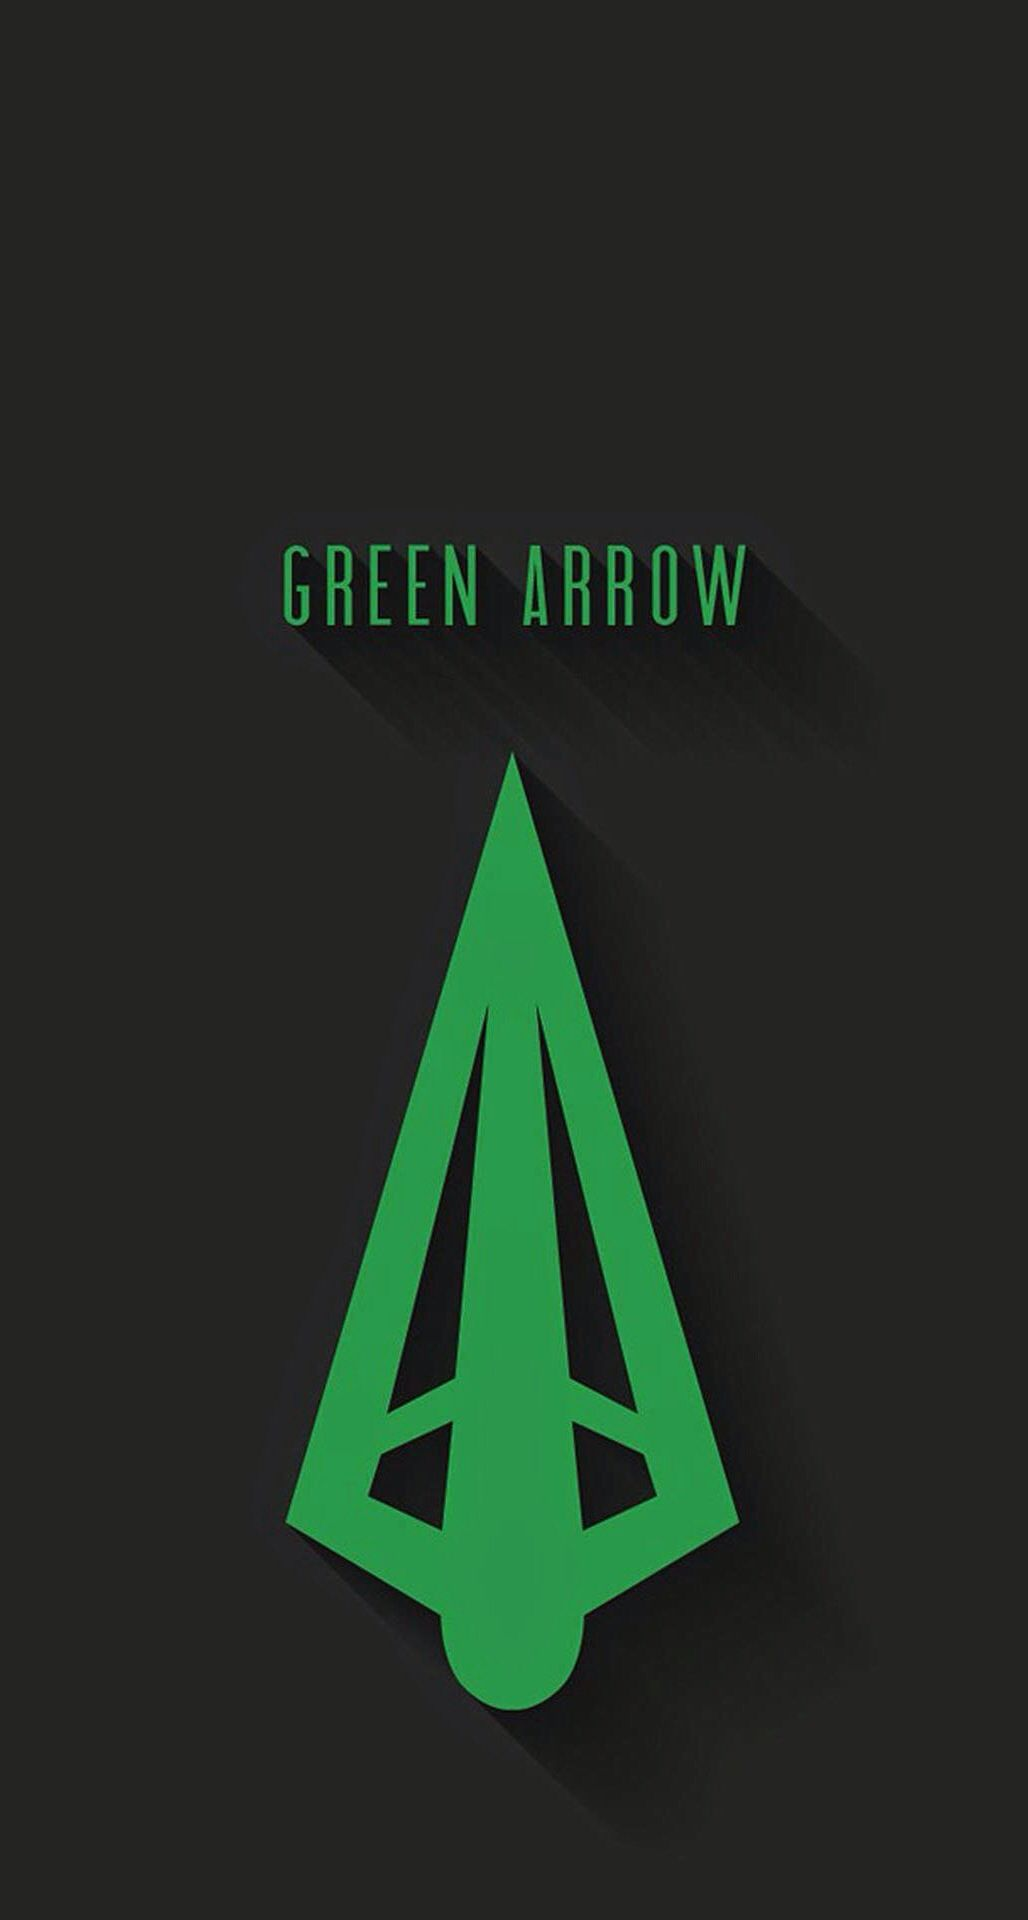 Green Arrow Icon Would Make A Cool Tattoo